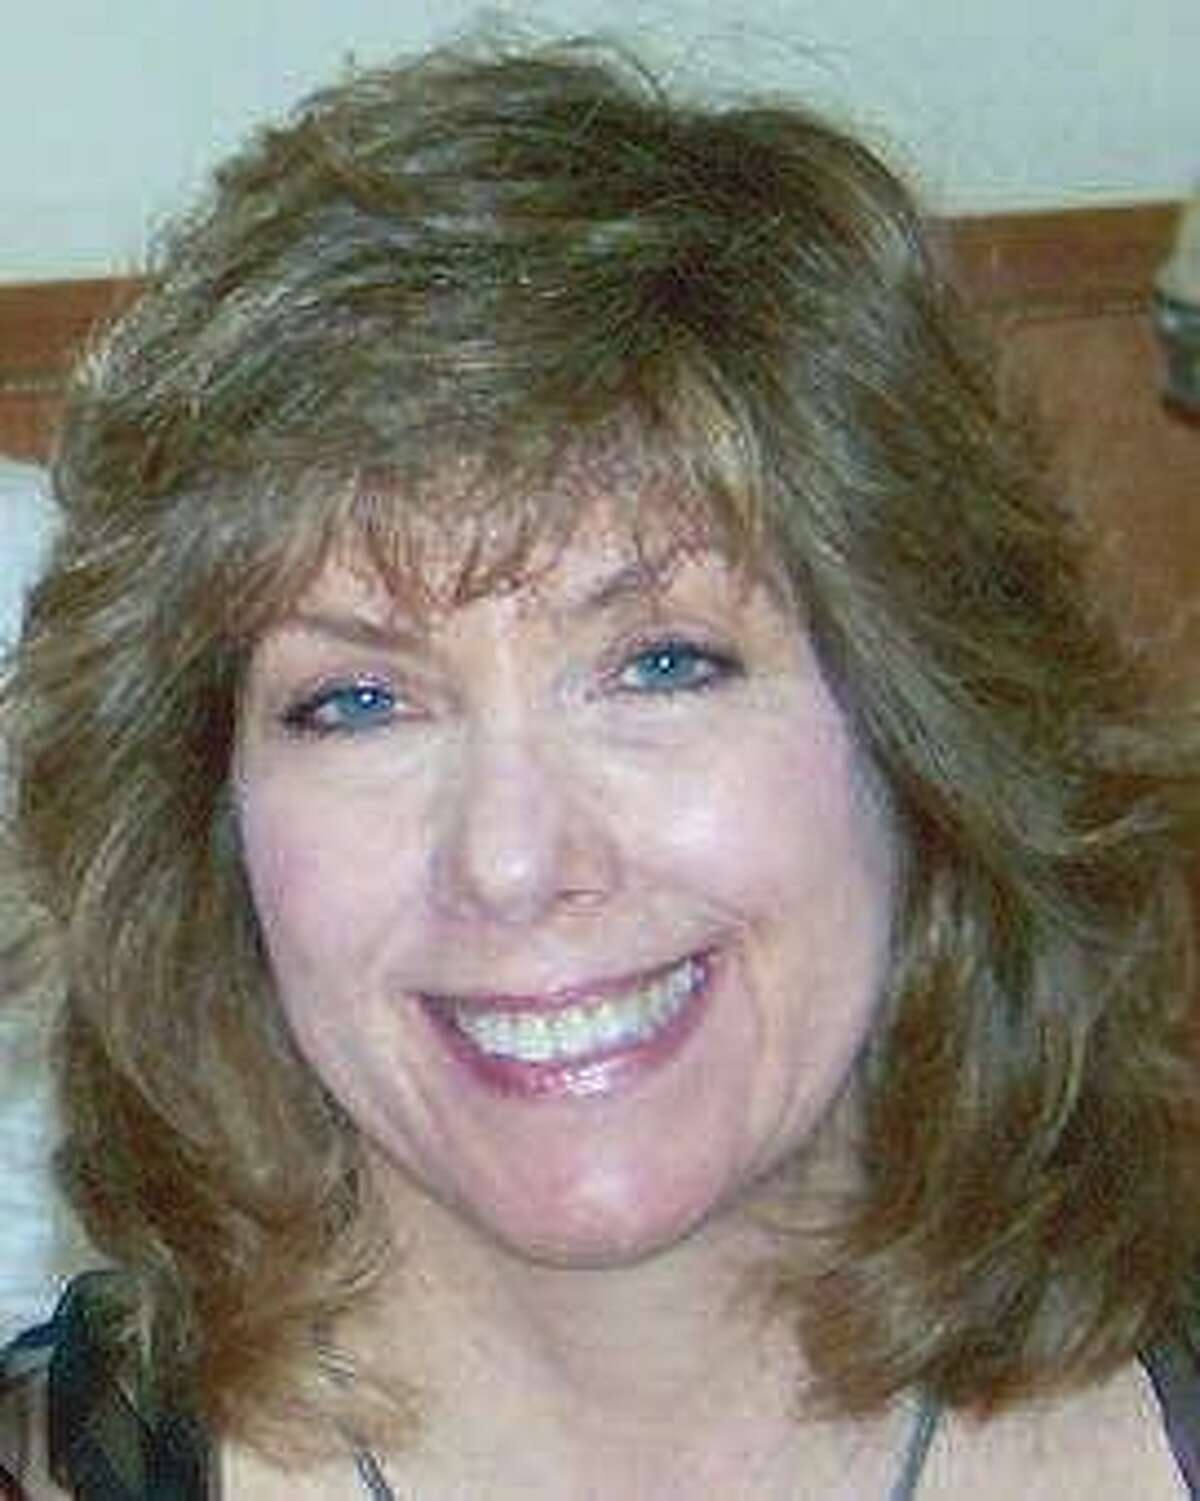 obit photo for Susan G. Gamble who died in New Braunfels Jan. 14, 2015